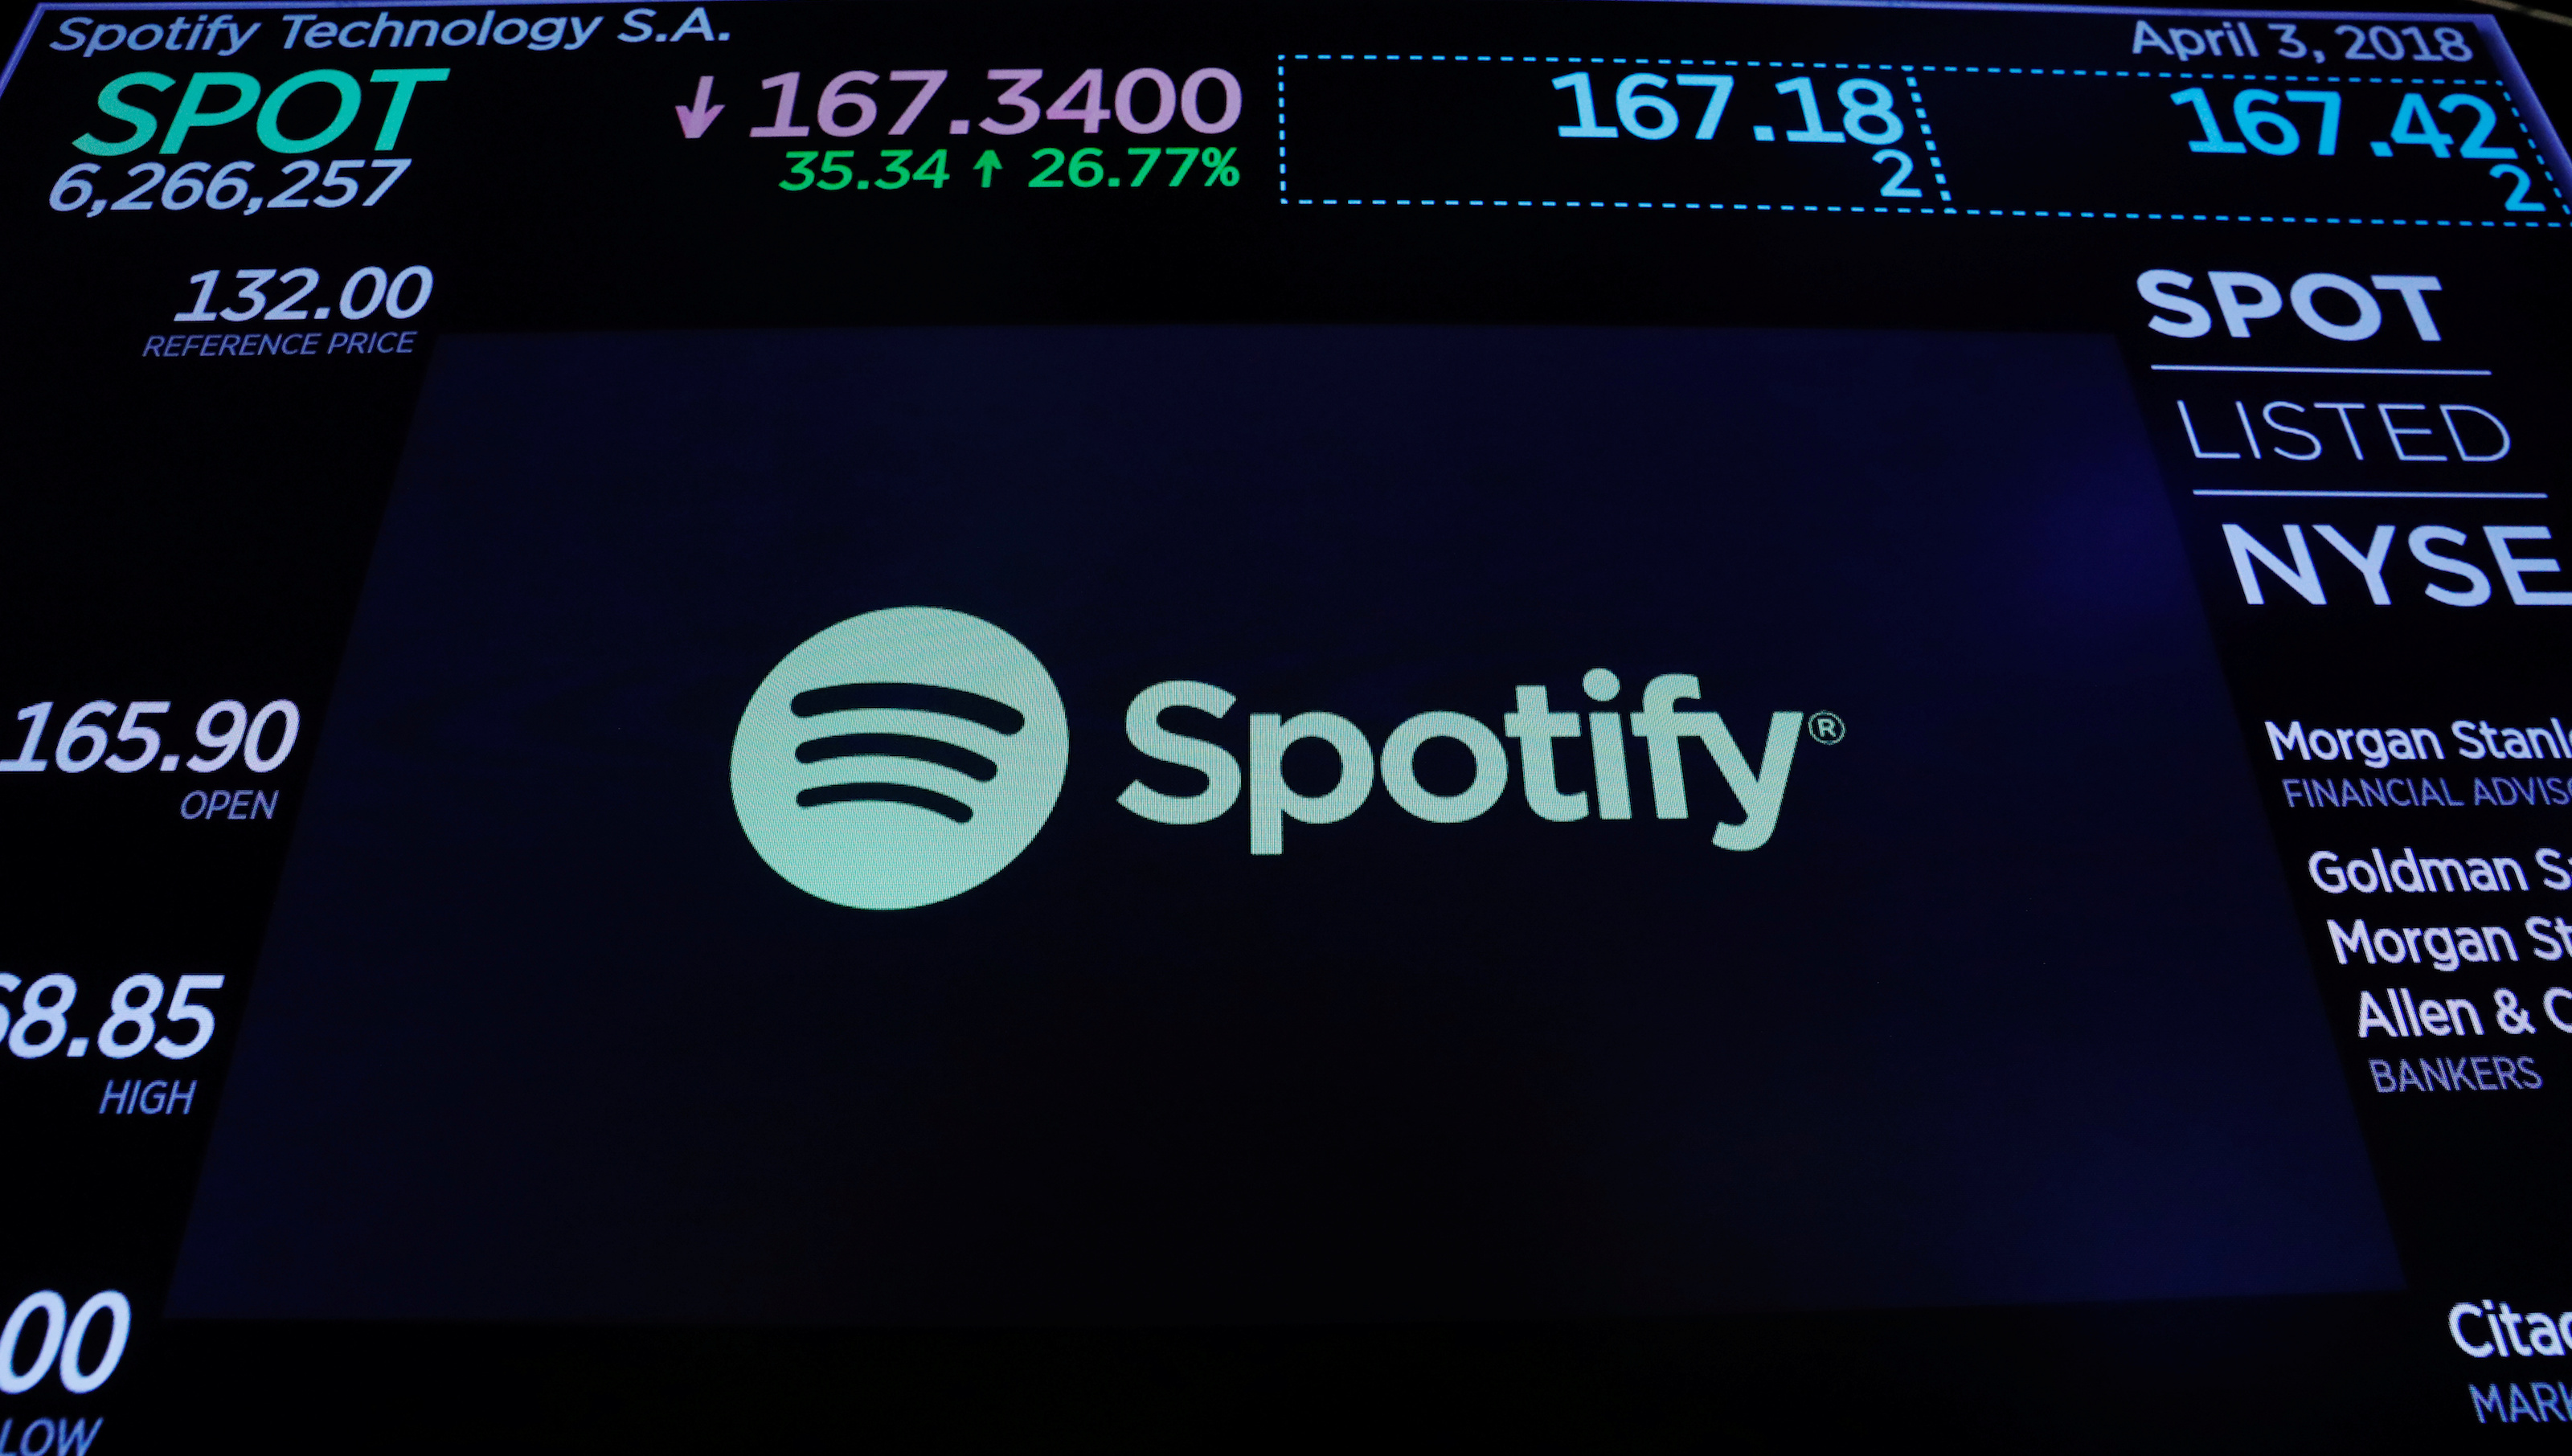 Investors see trouble through Spotify's Q3 profitability